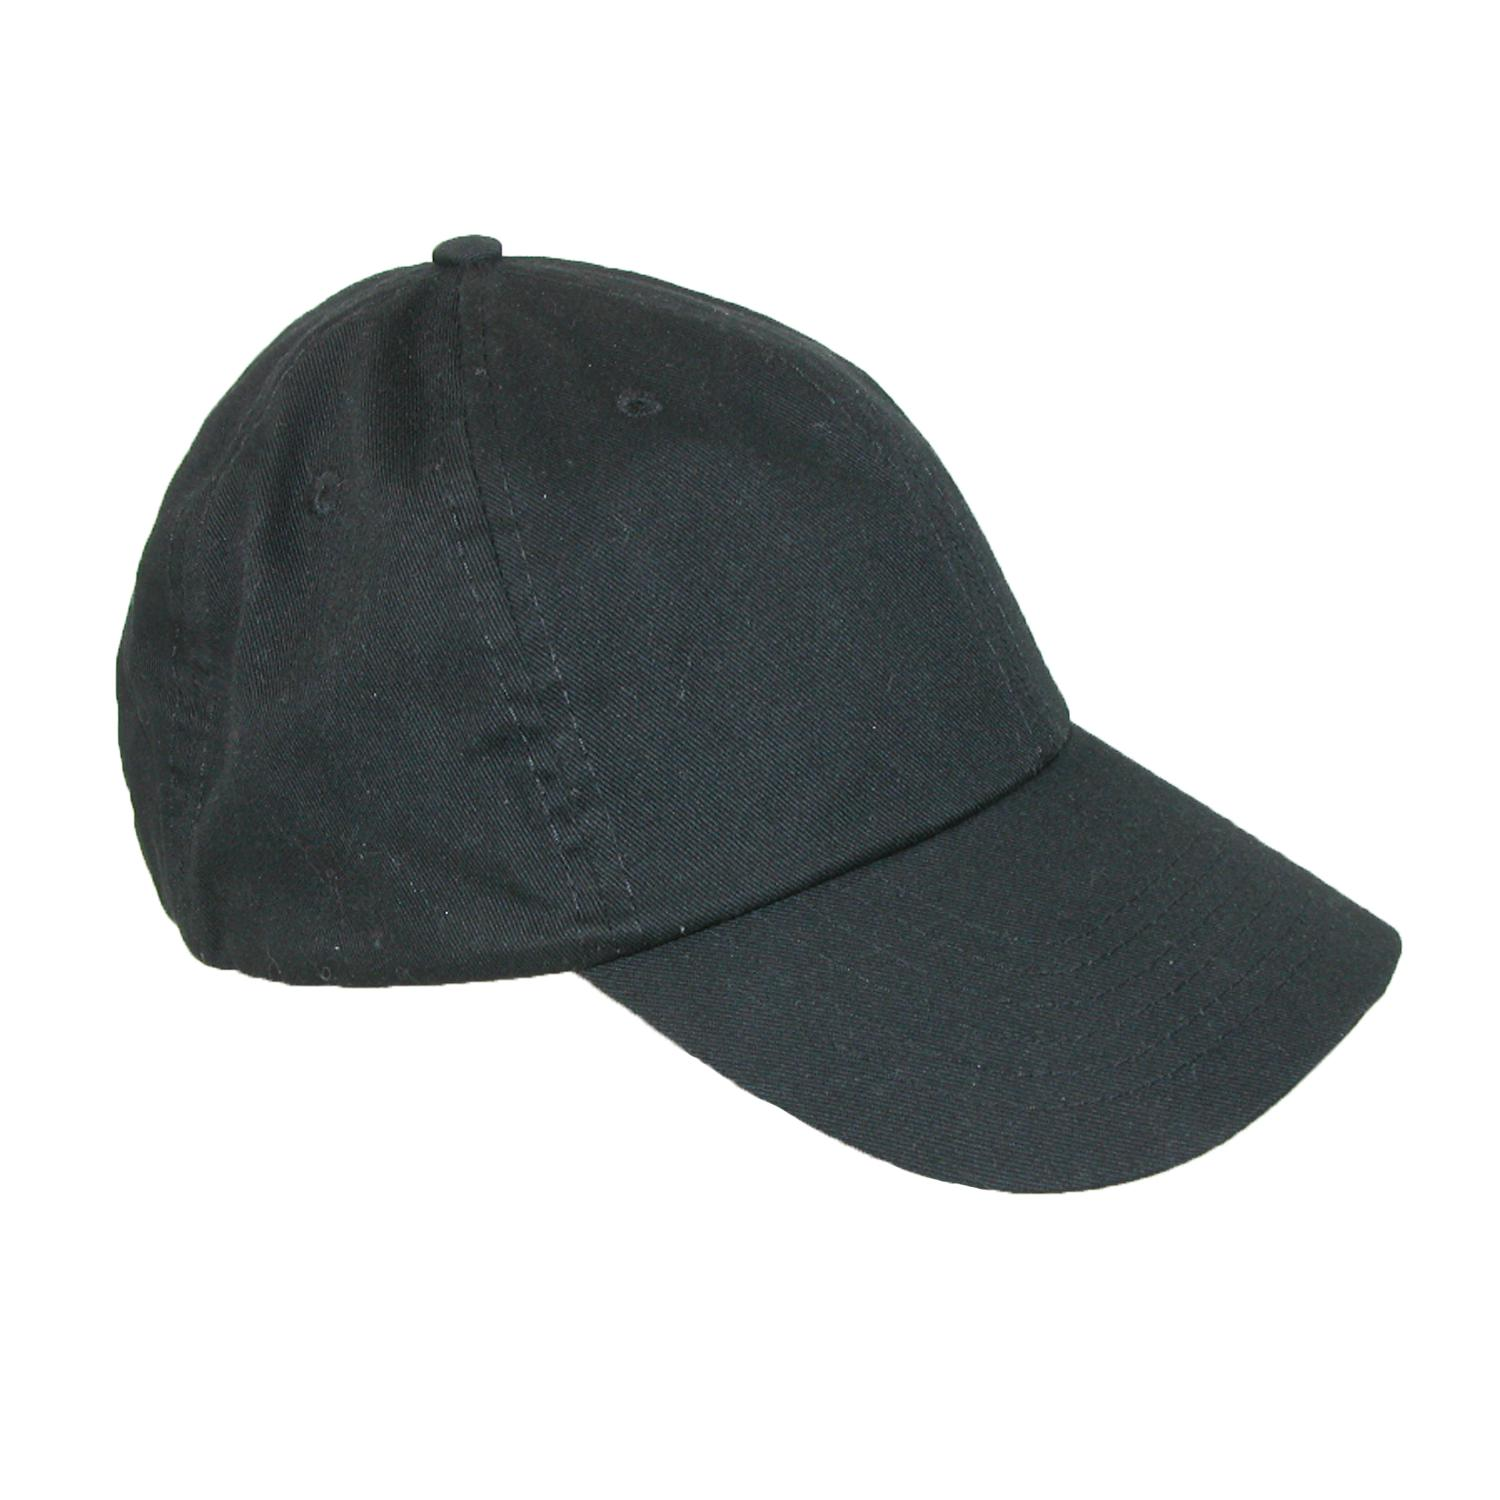 Dorfman_Pacific_Classic_Cotton_Basic_Solid_Sports_Baseball_Cap_-_Black